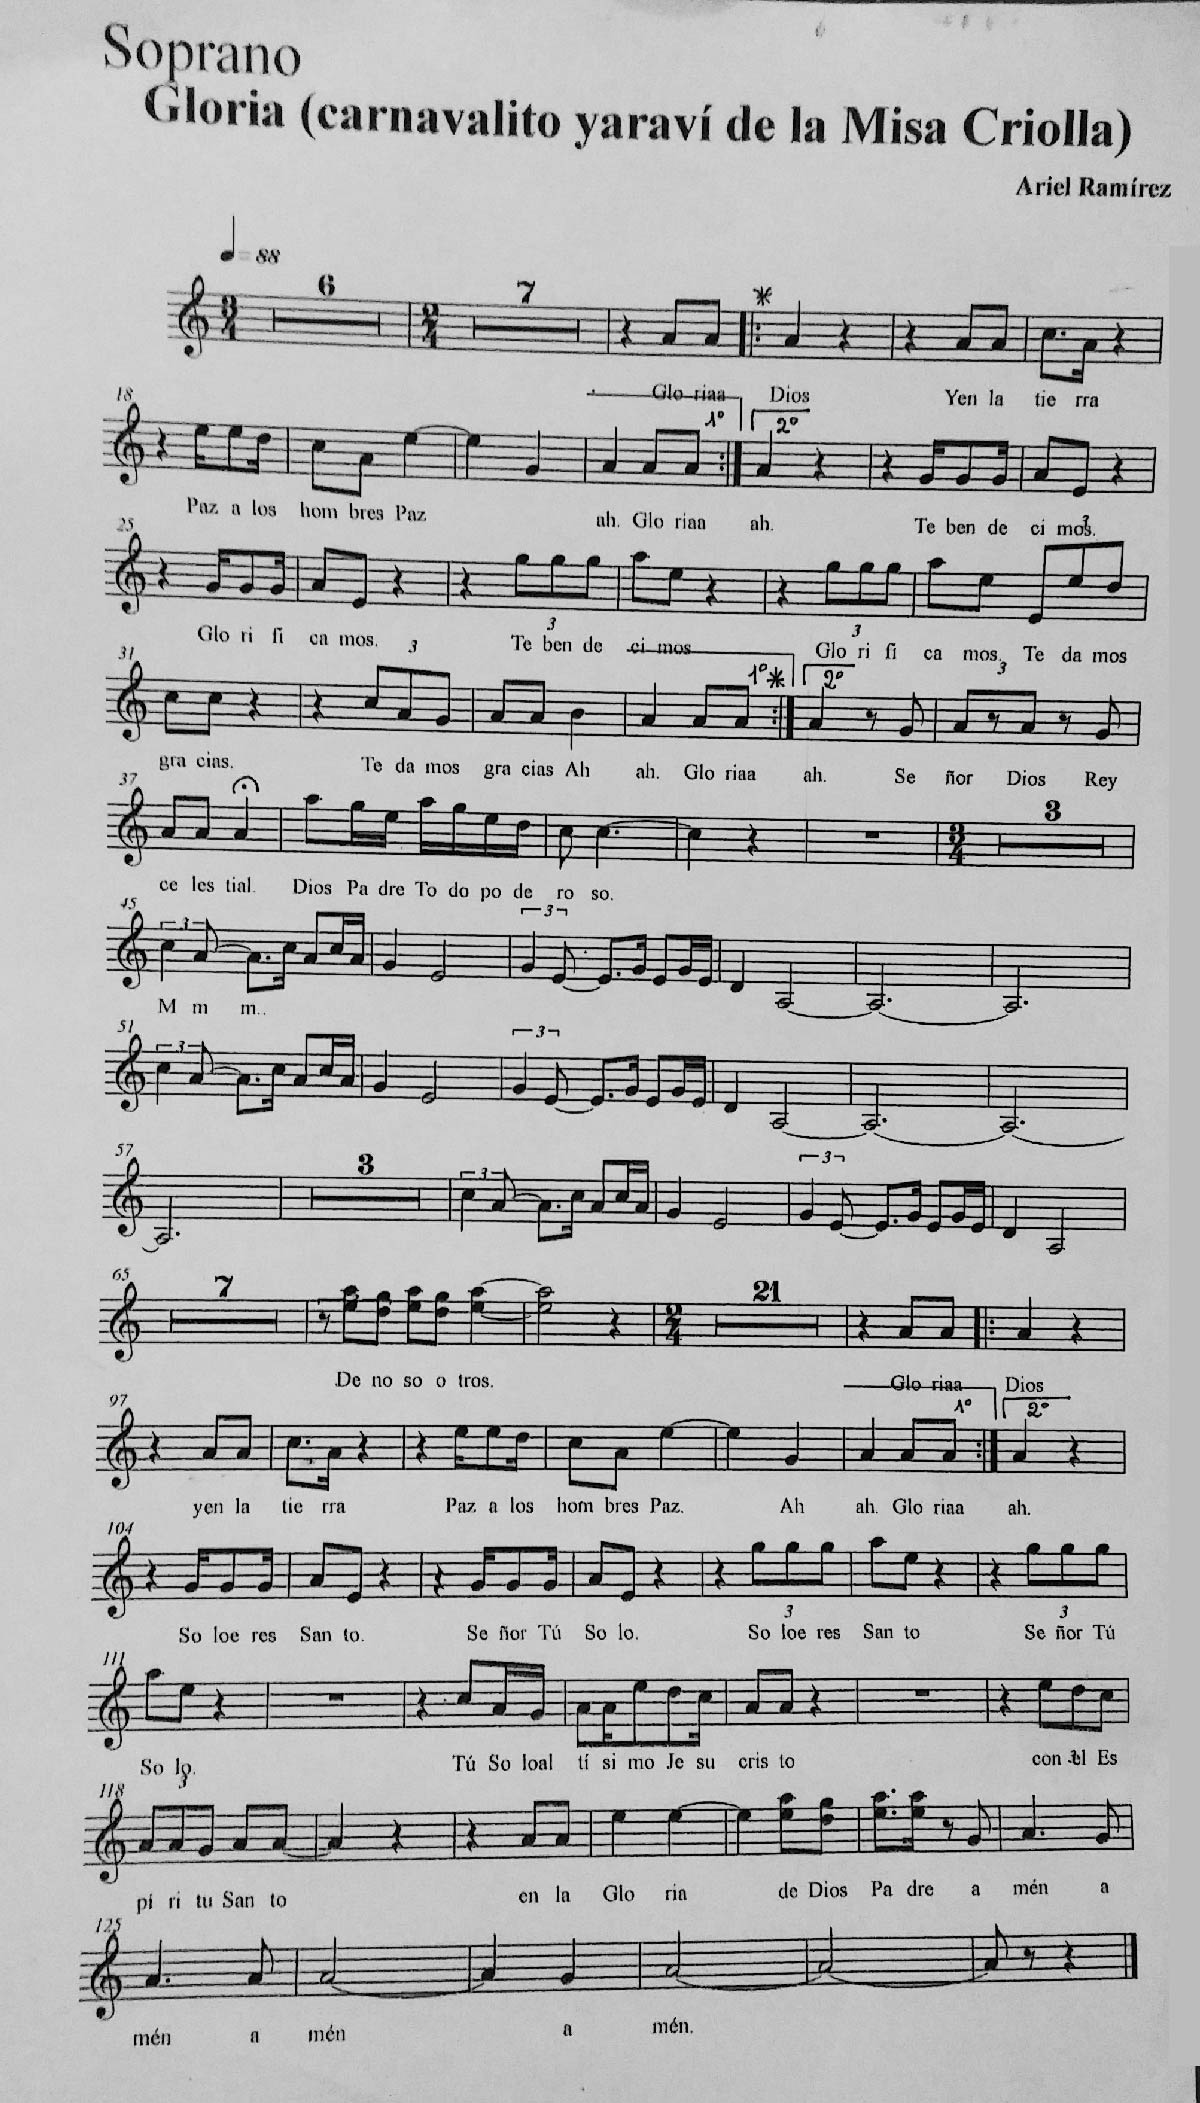 MISA CRIOLLA ARIEL RAMIREZ PARTITURA PDF DOWNLOAD